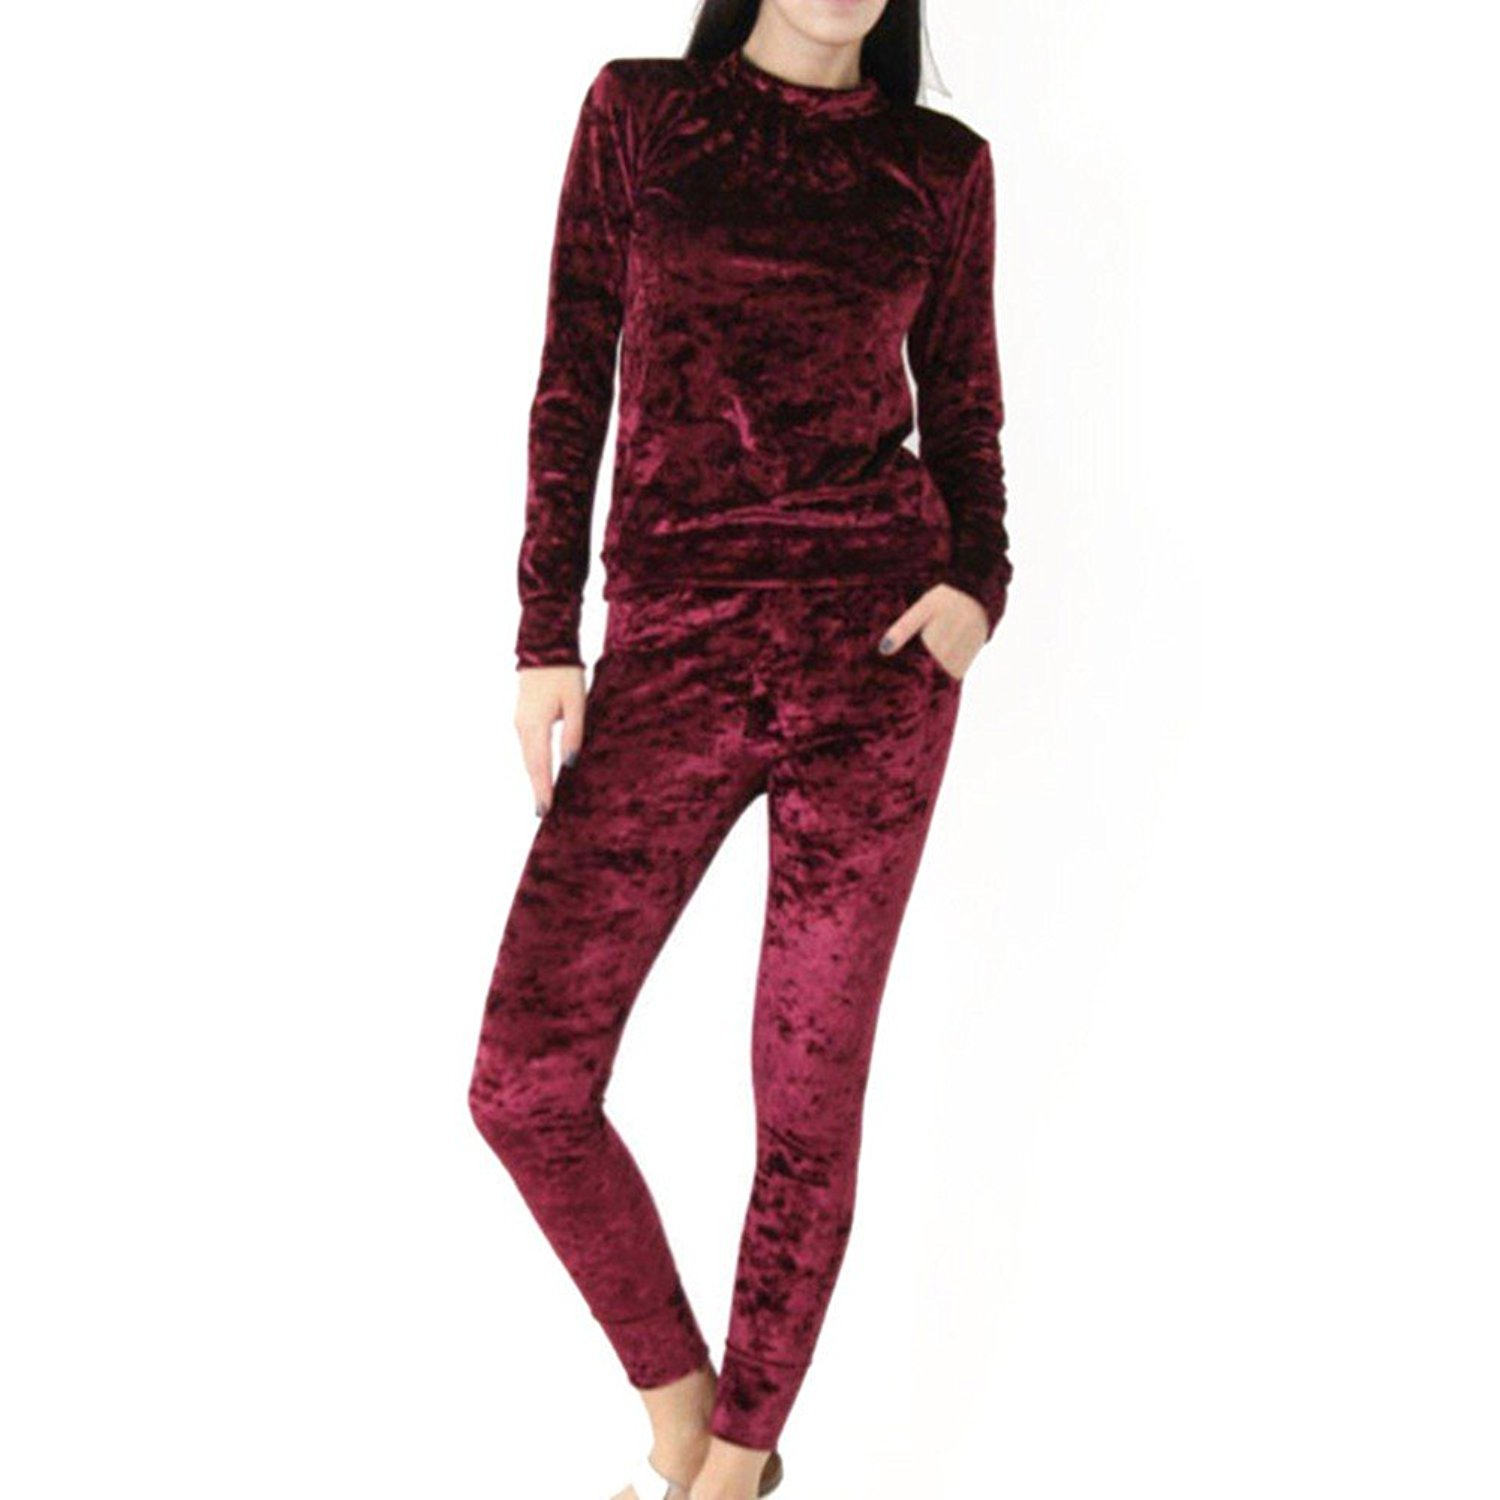 Daxin Womens Crushed Velvet Suit Sweatshirt Pants Lounge Wear Two Piece Set Tracksuit Jogger at Amazon Women's Clothing store: